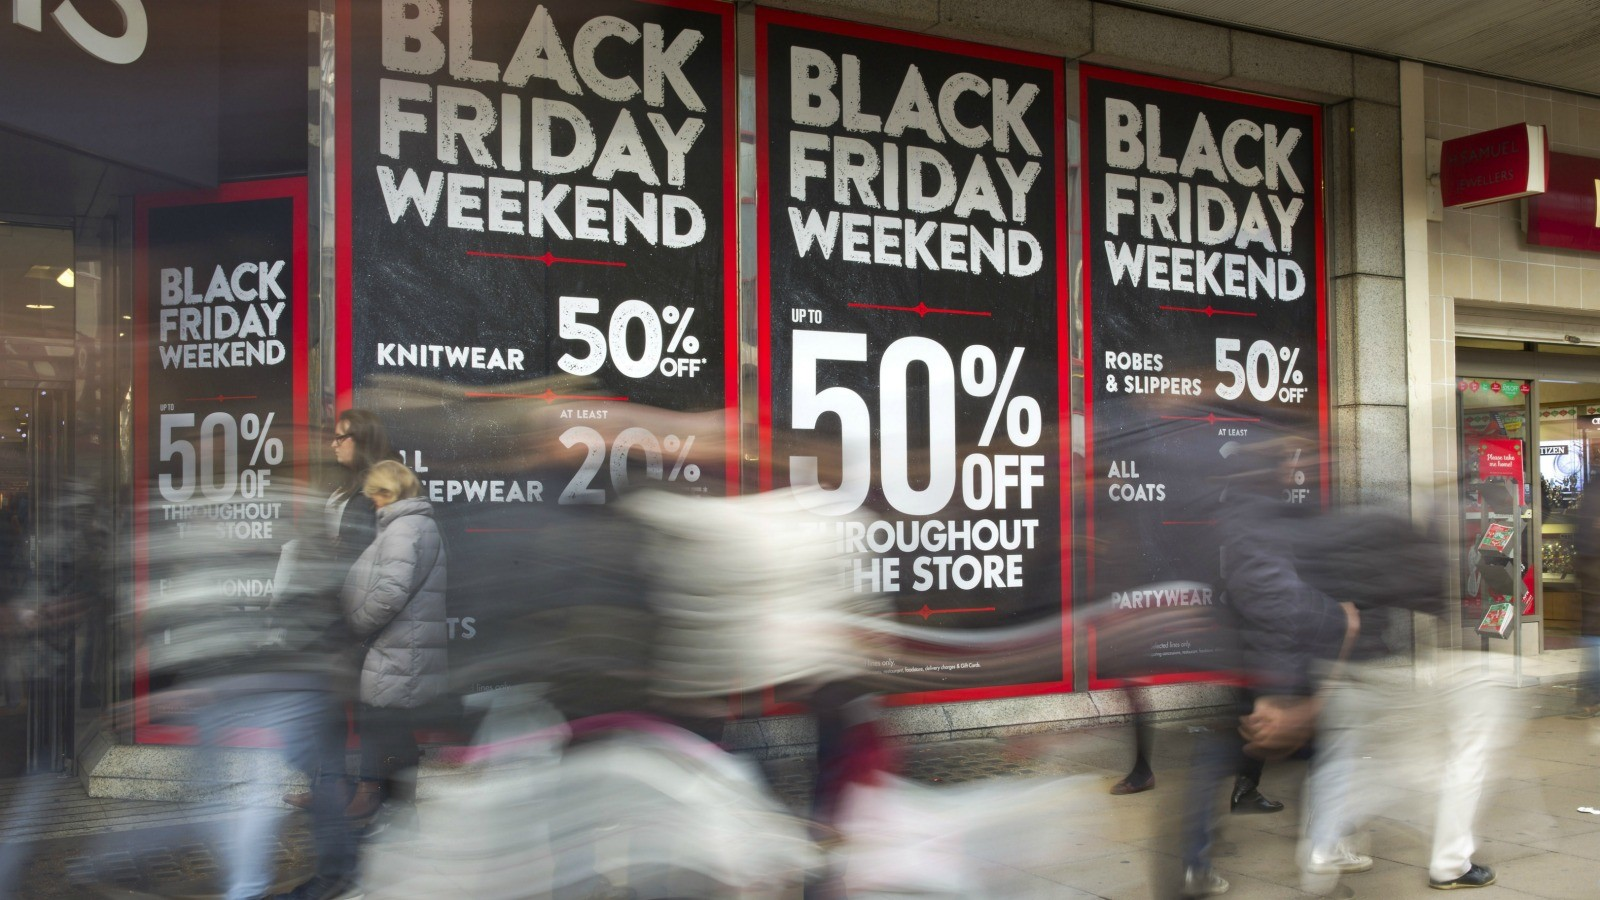 Black Friday – it's basically another way of saying 'big sale'